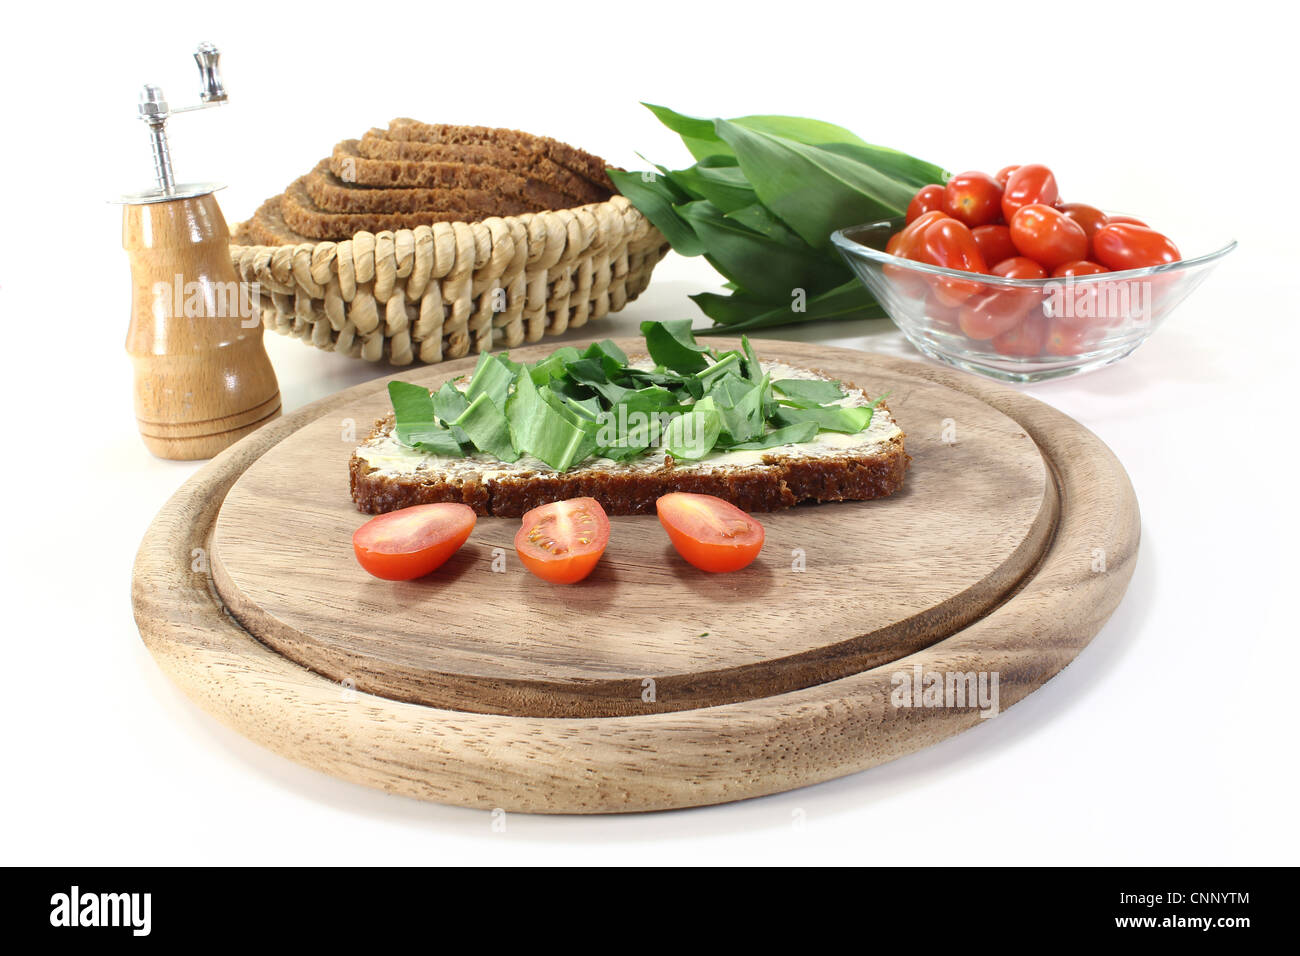 ramson bread with butter, fresh ramson and tomatoes on a light background - Stock Image